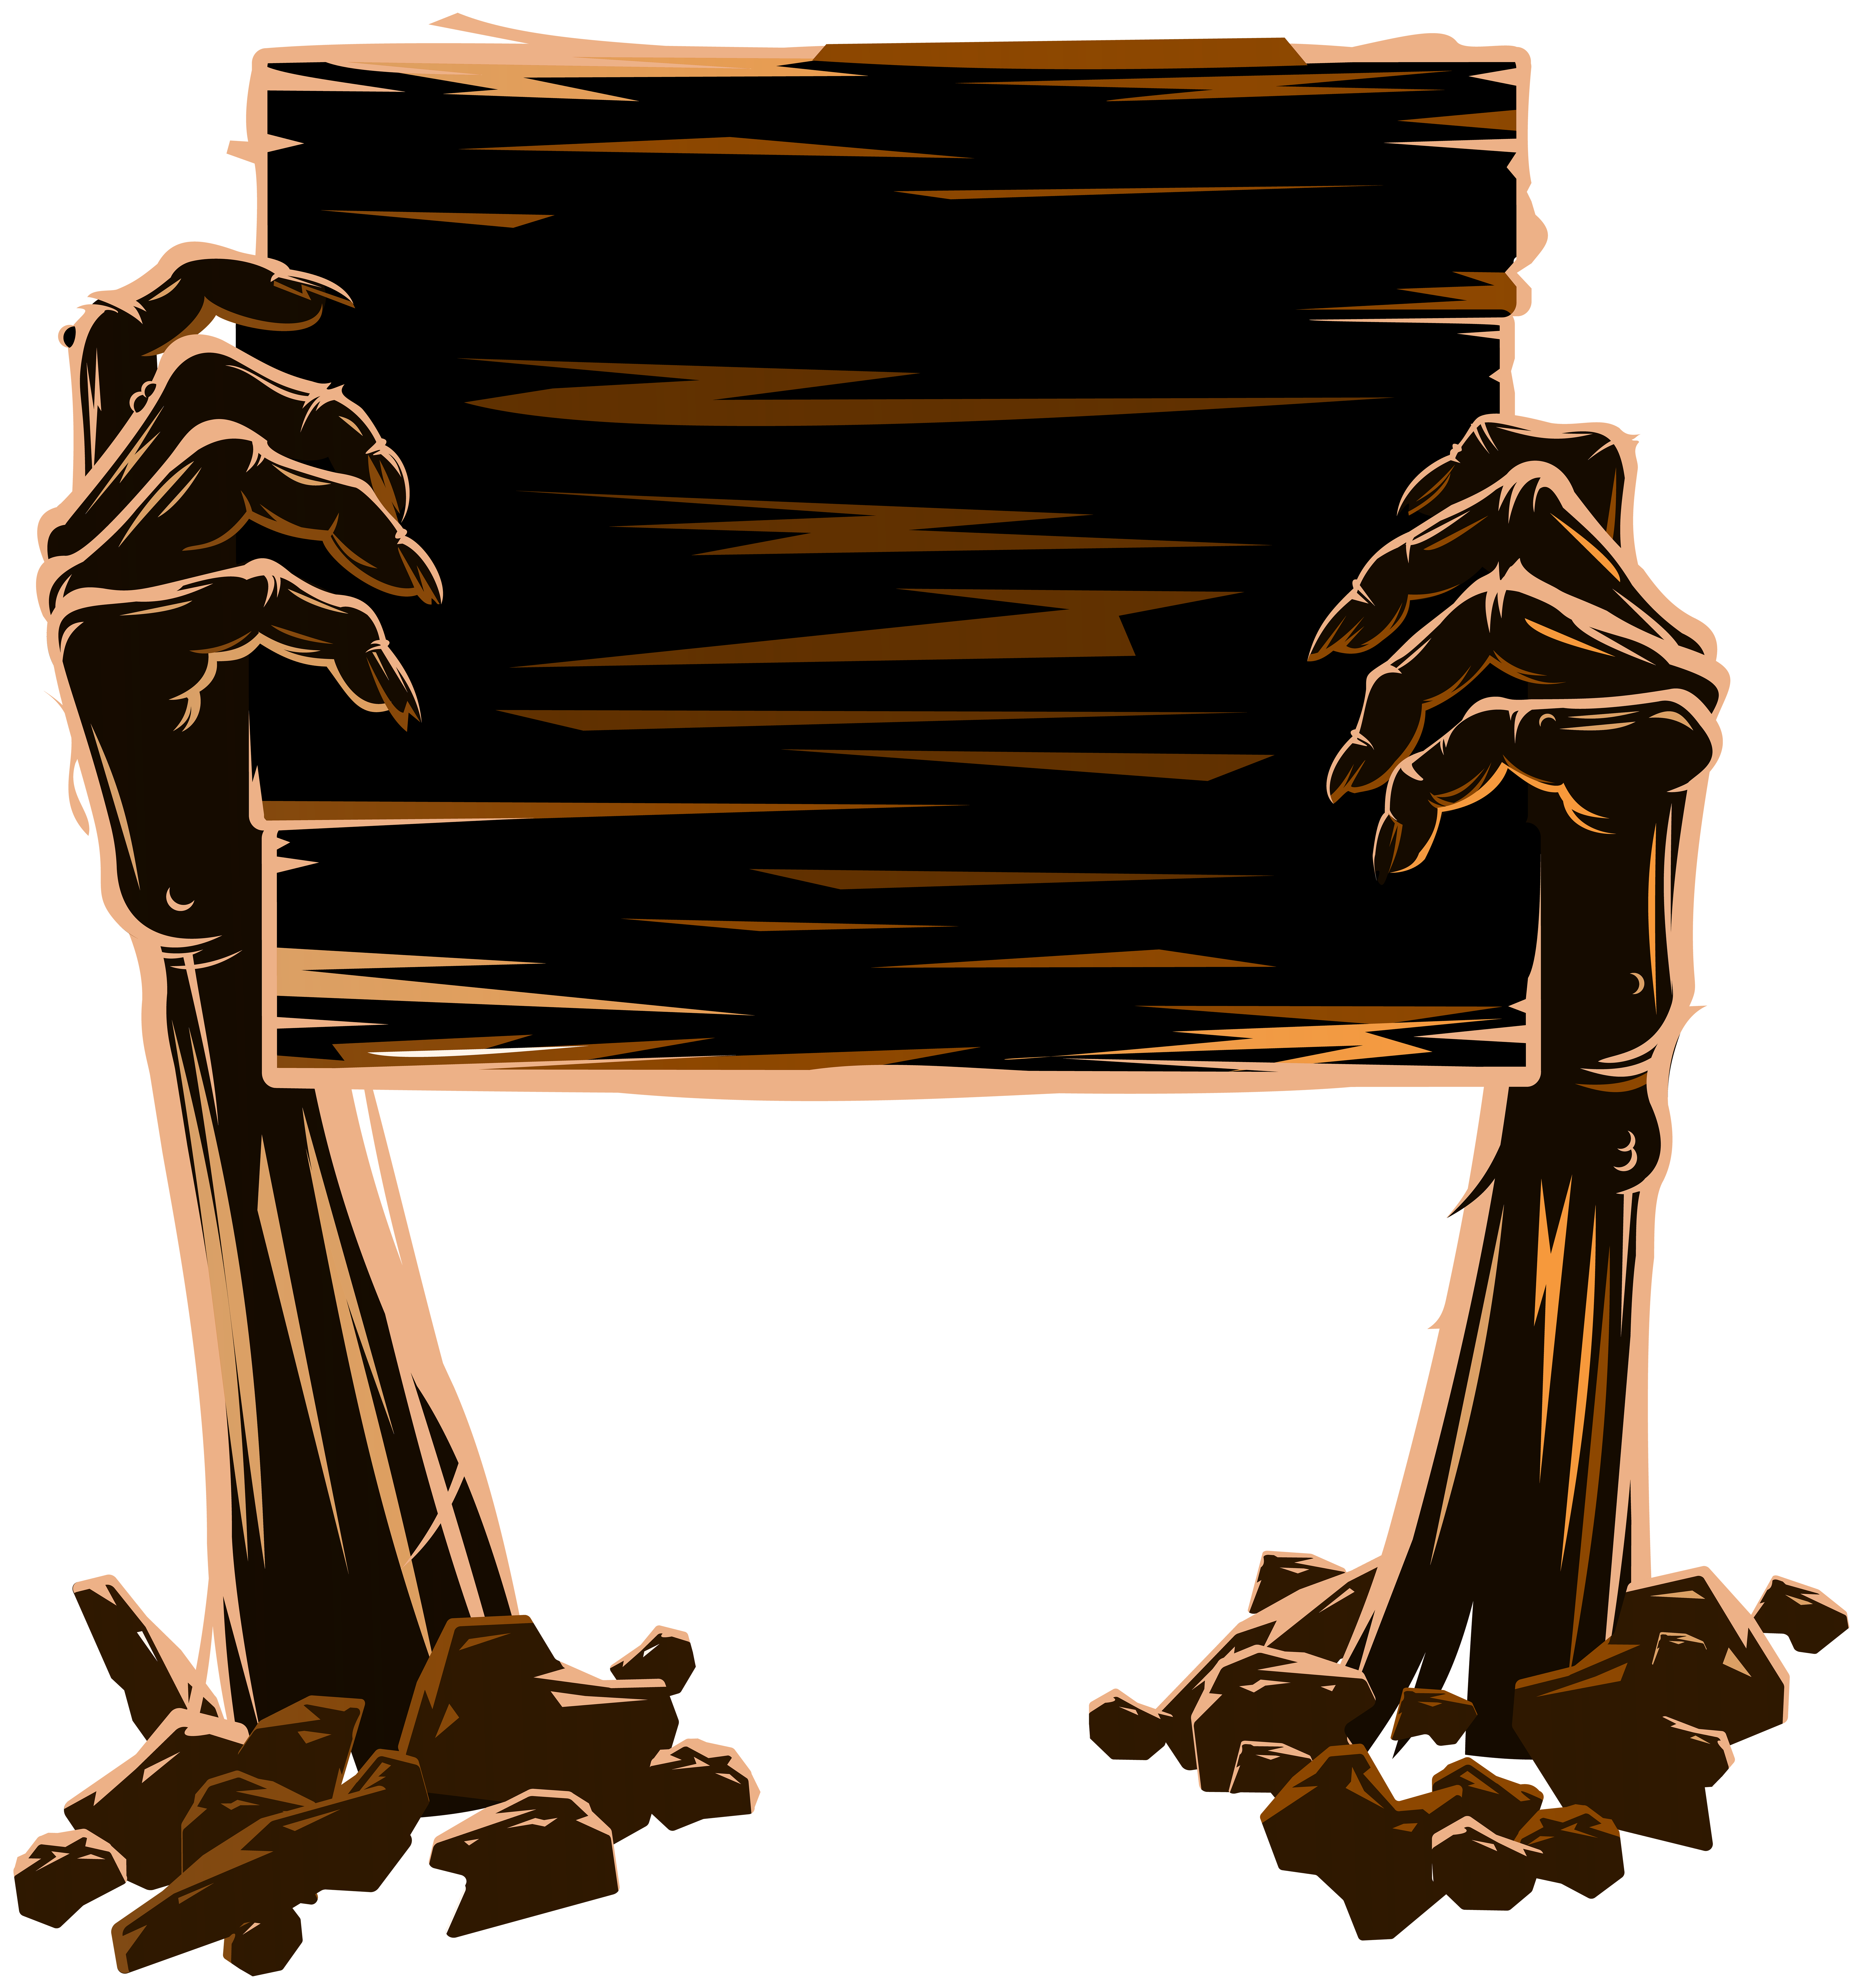 Zombie hands png. Holding board clip art